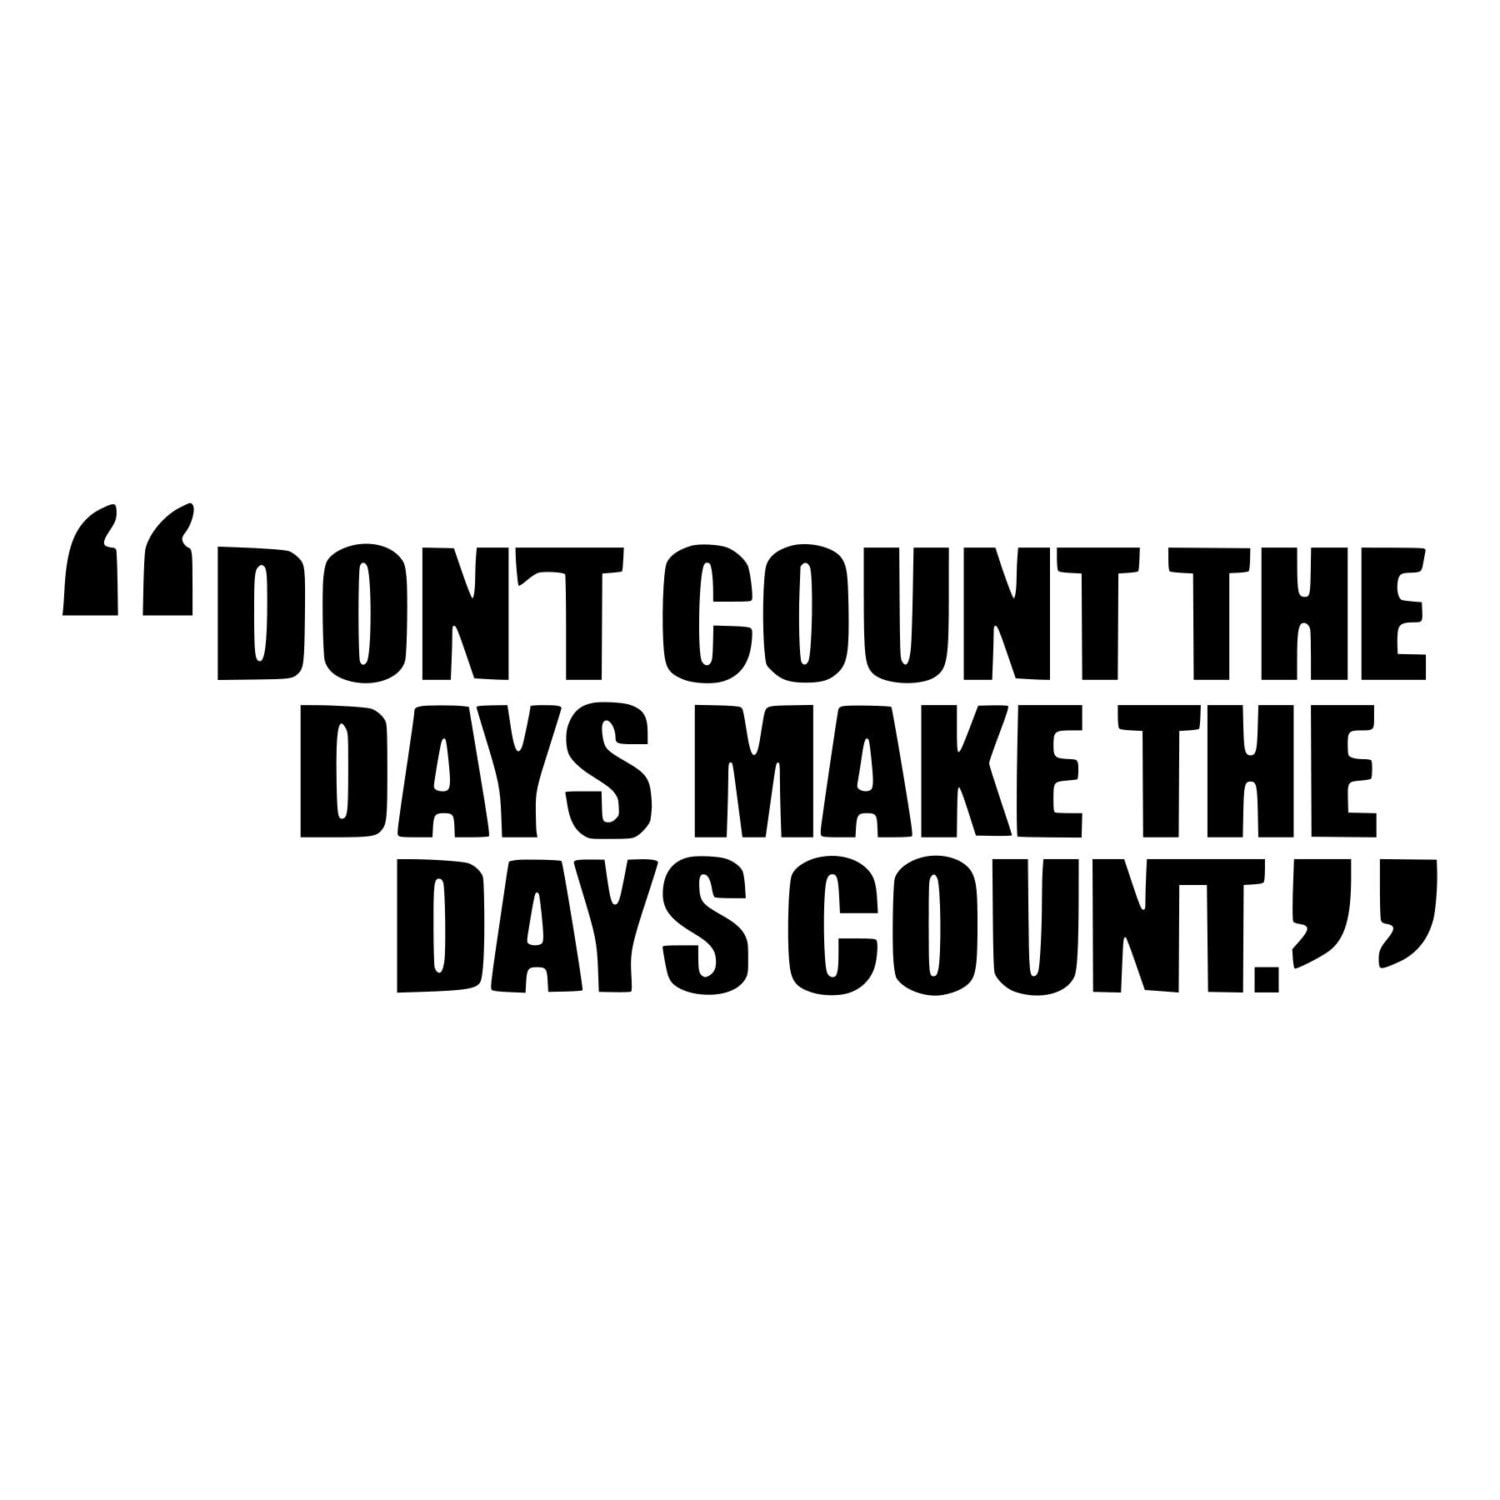 Make Your Day Count Quotes: Make The Days Count Inspirational Quote Die-Cut Decal Car